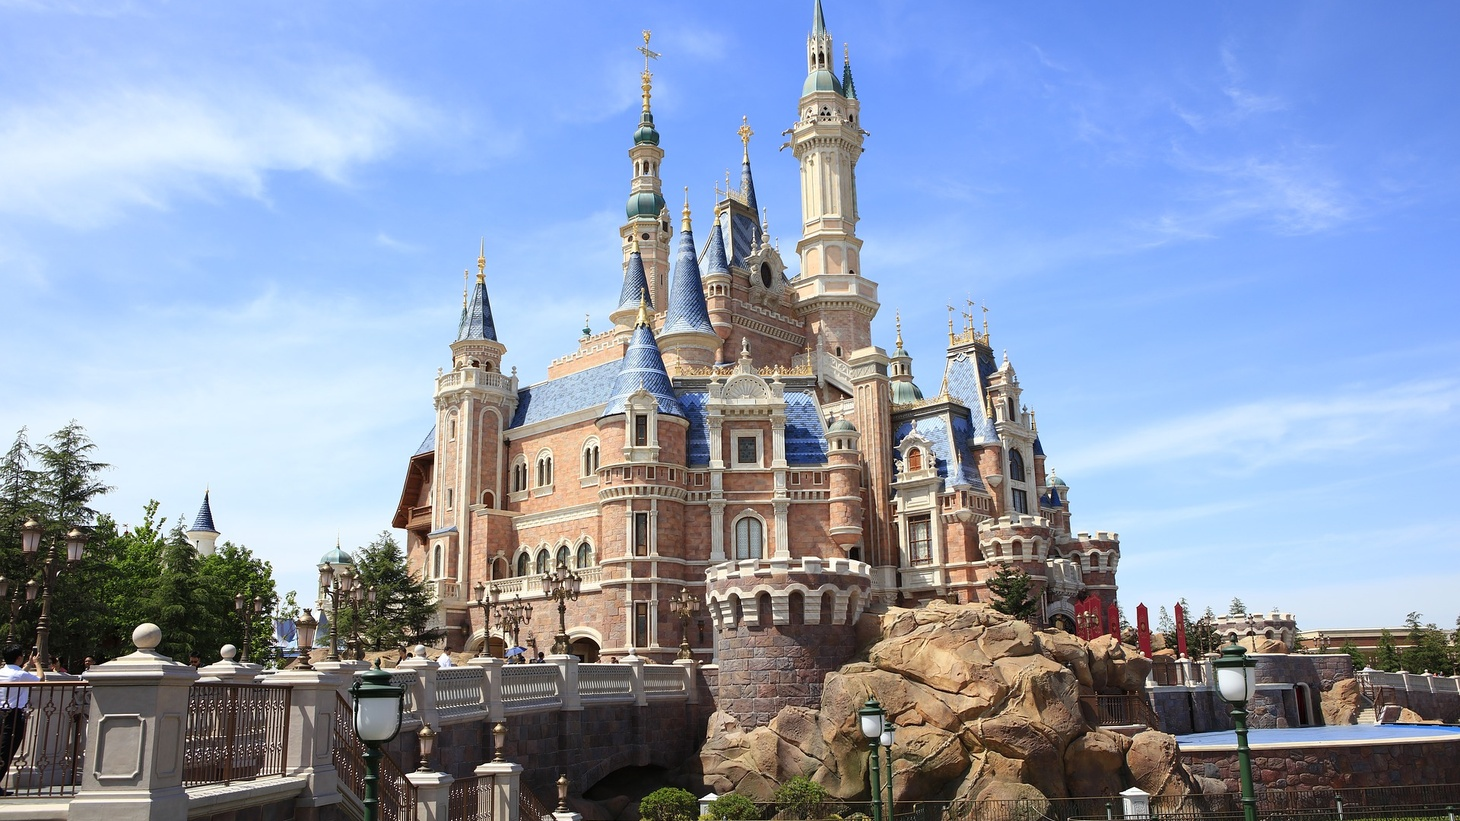 Shanghai Disneyland is set to reopen May 11, but with new social distancing and safety rules.